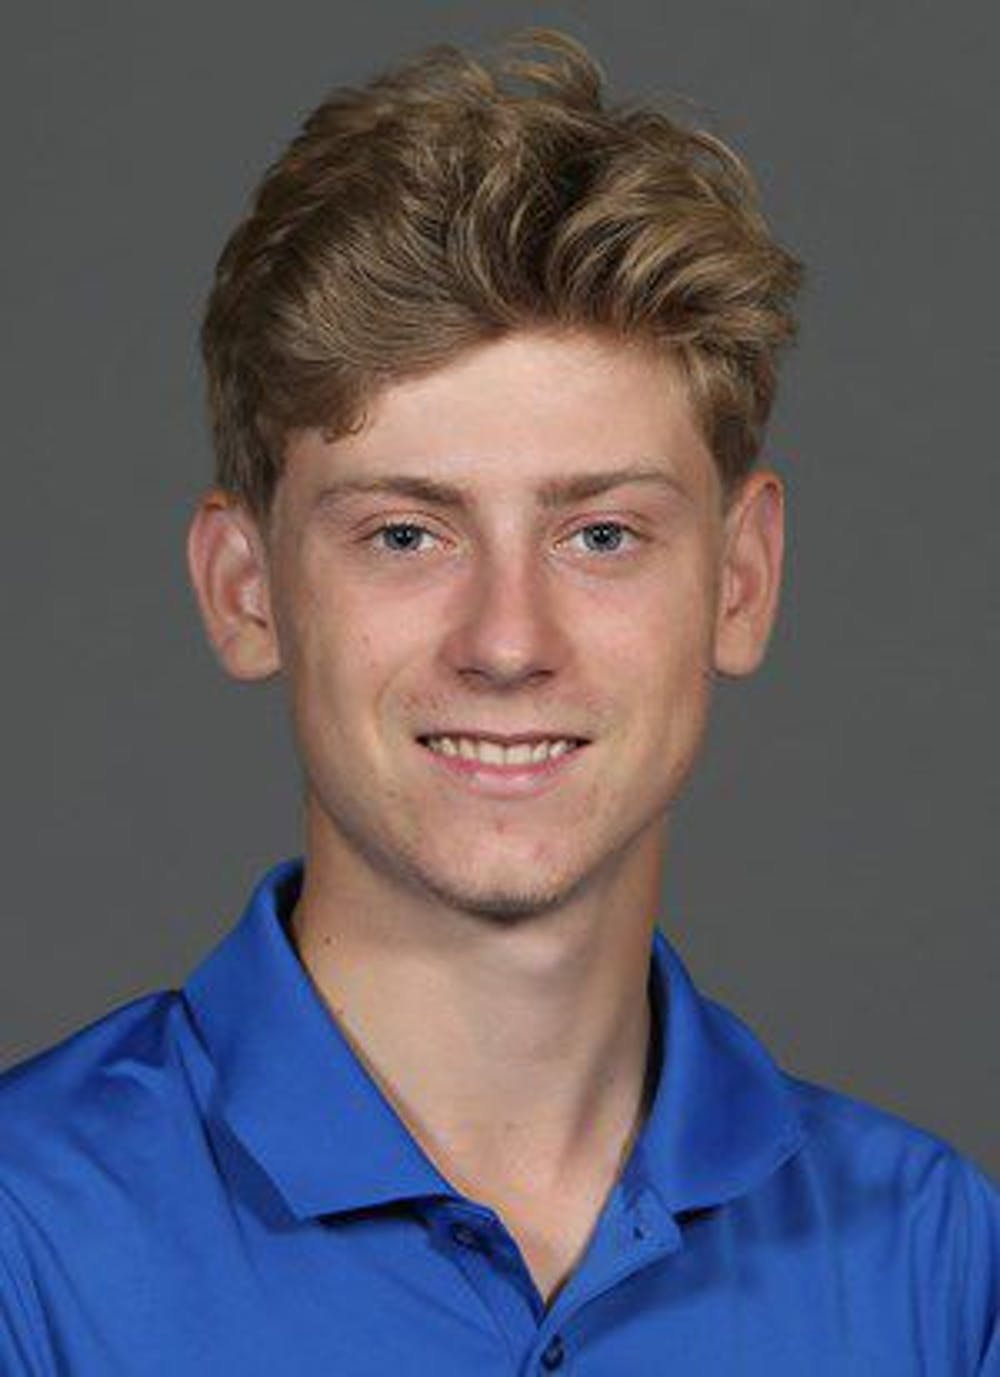 <p>Freshman golfer John Axelsen led the way for the Gators on Day 2 of the NCAA Championships. He posted a team-low score of 4 under on Saturday.&nbsp;</p>